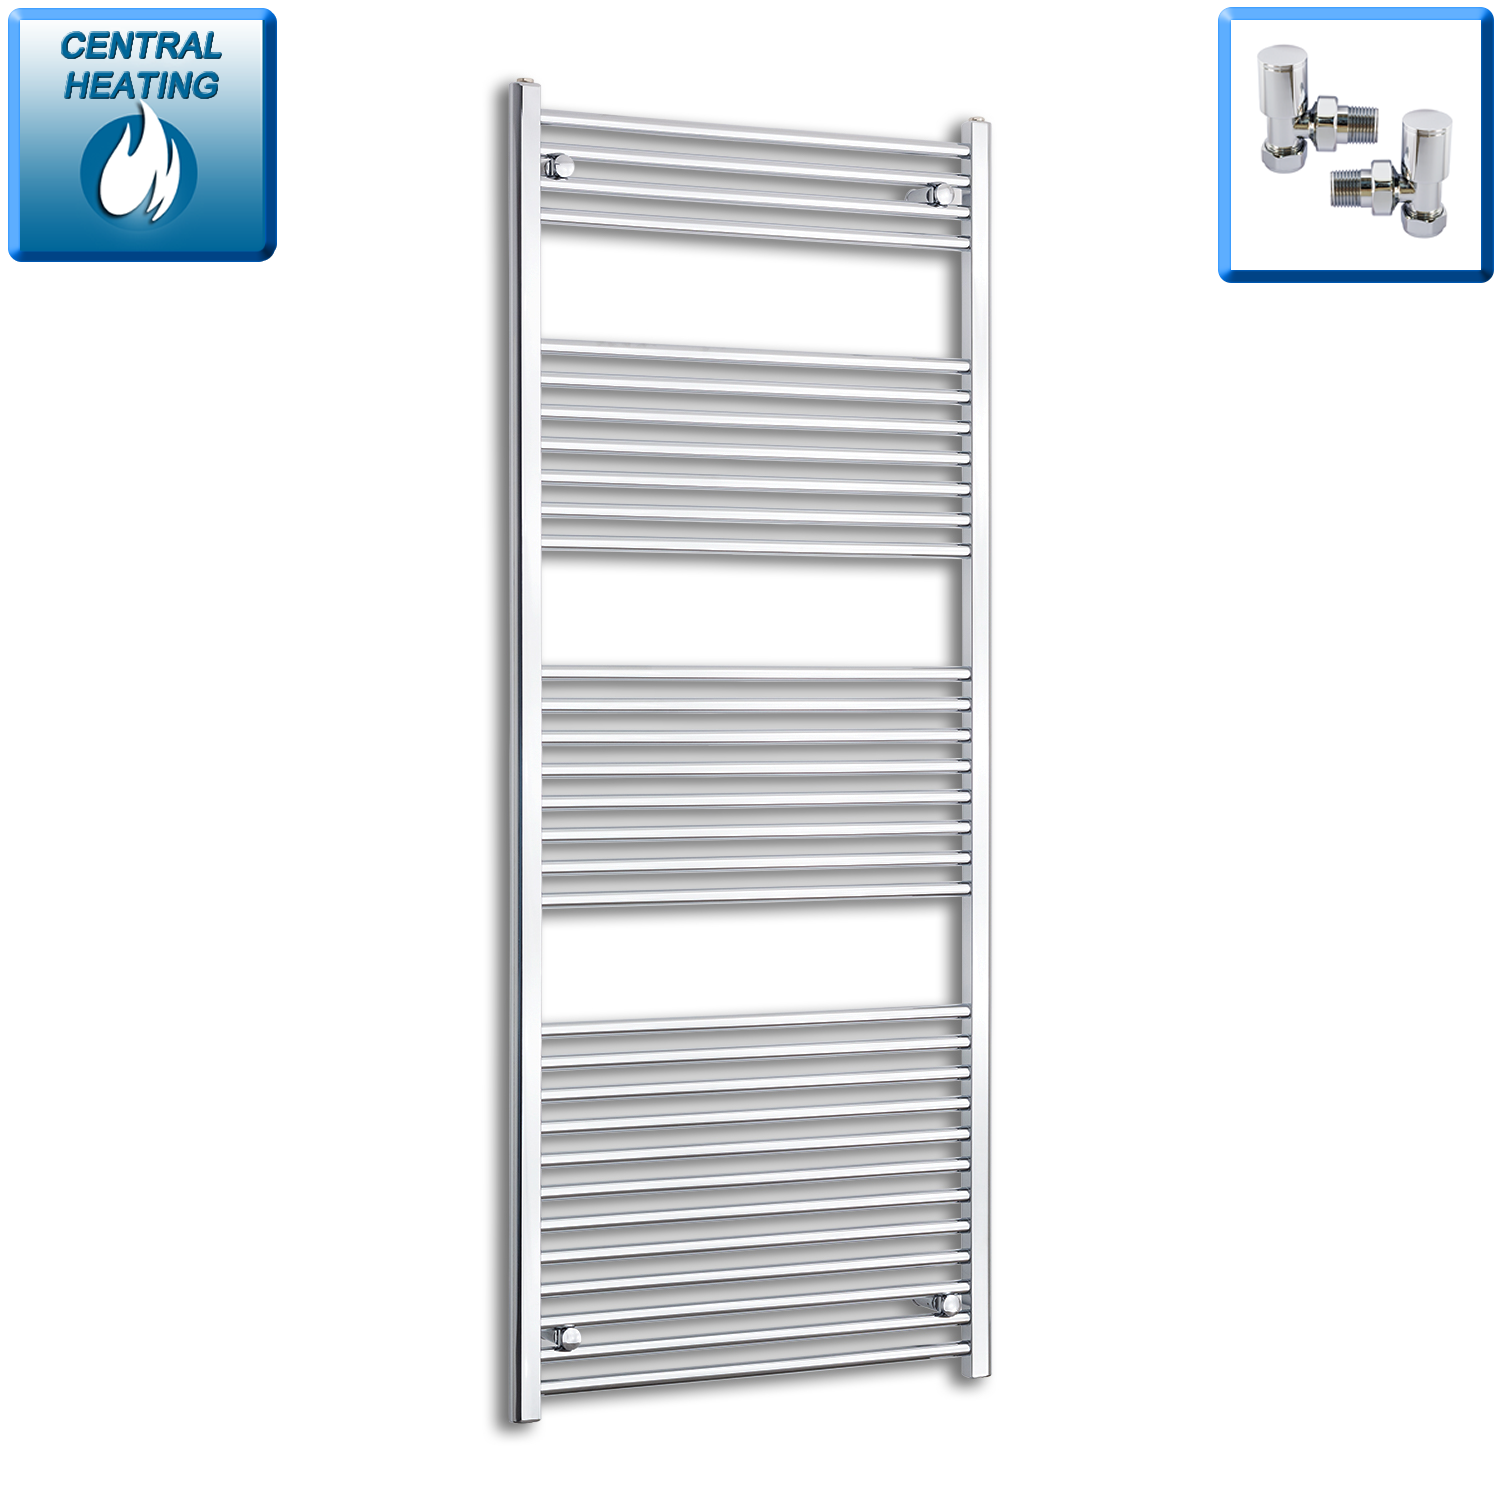 800mm Wide 1800mm High Flat Chrome Heated Towel Rail Radiator HTR,With Angled Valve